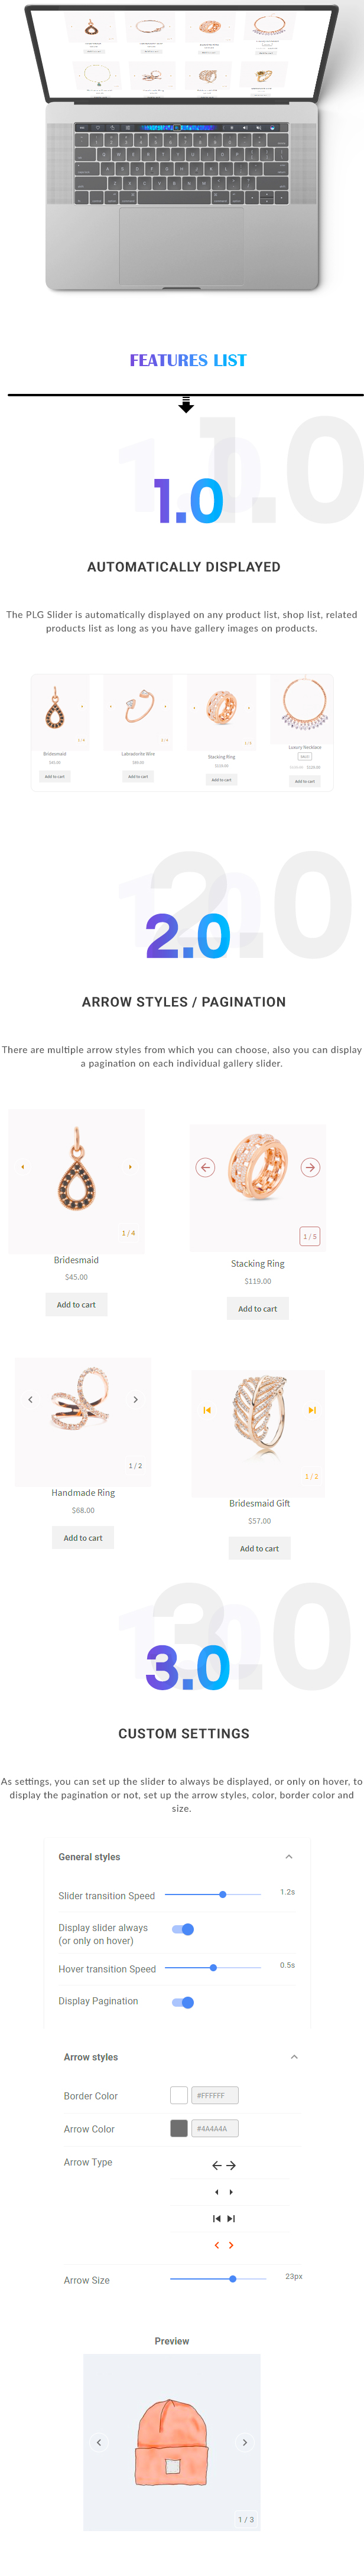 PLG - Products List Gallery Slider for WooCommerce - 1